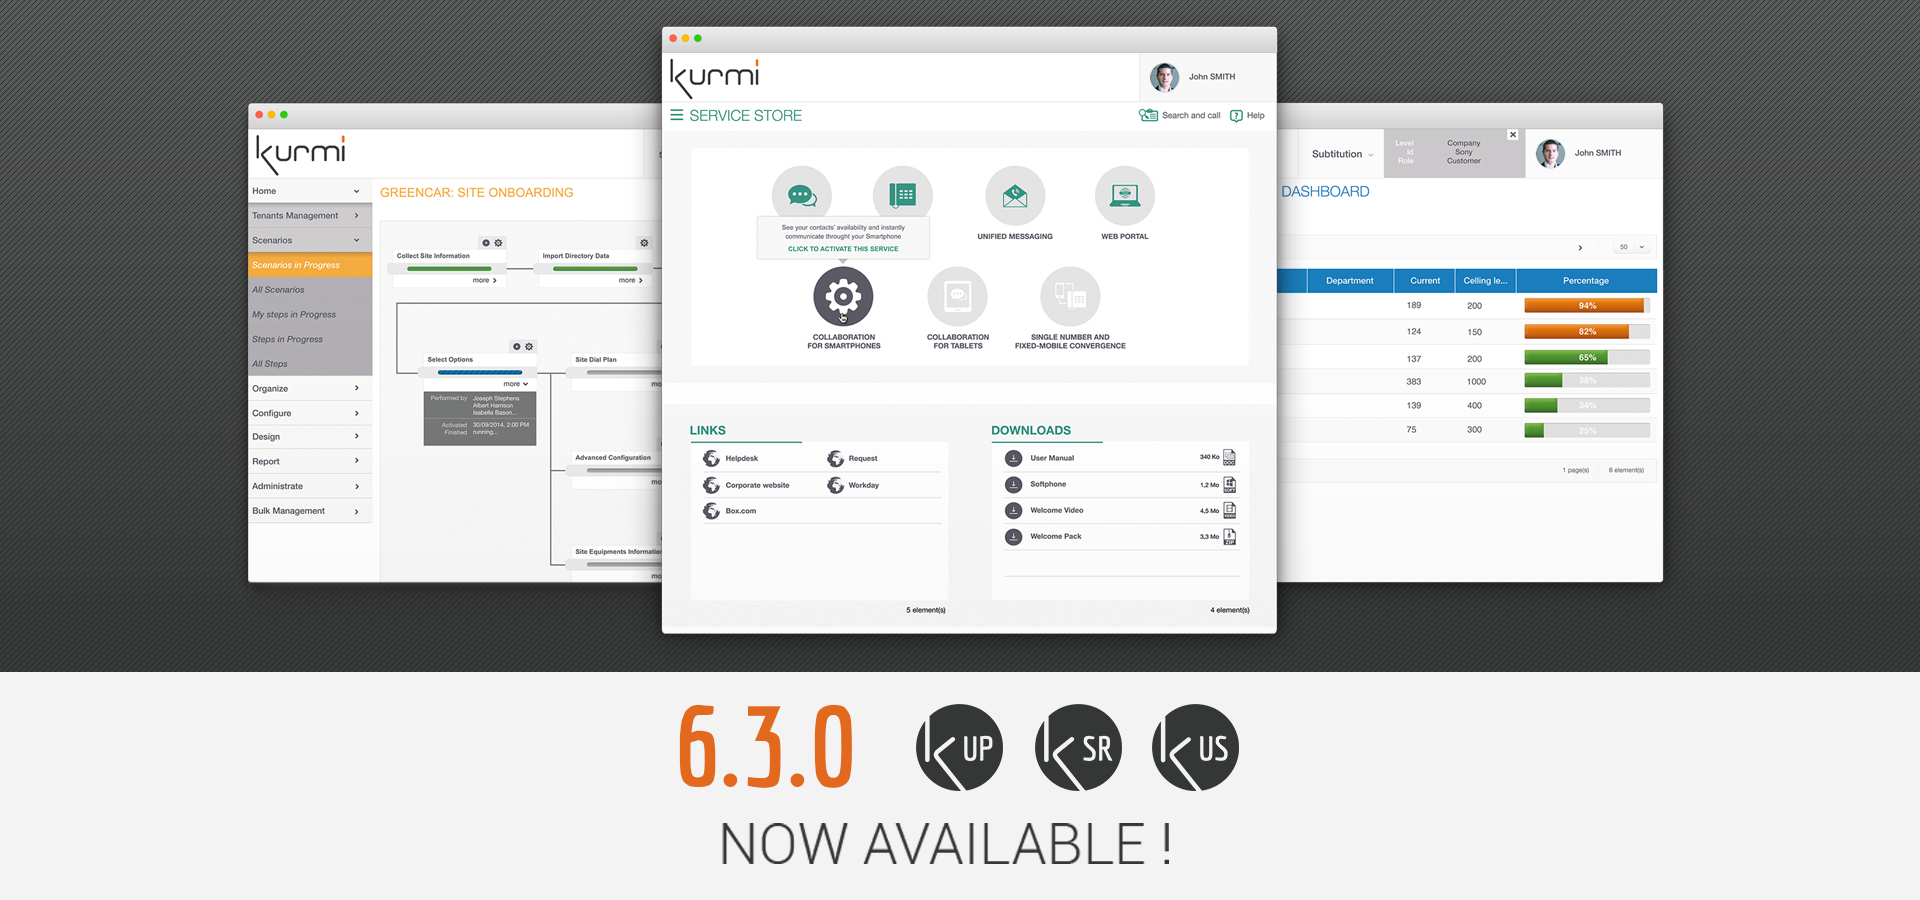 Kurmi Software announced the new 6.3.0 release of its flagship Kurmi Software Suite